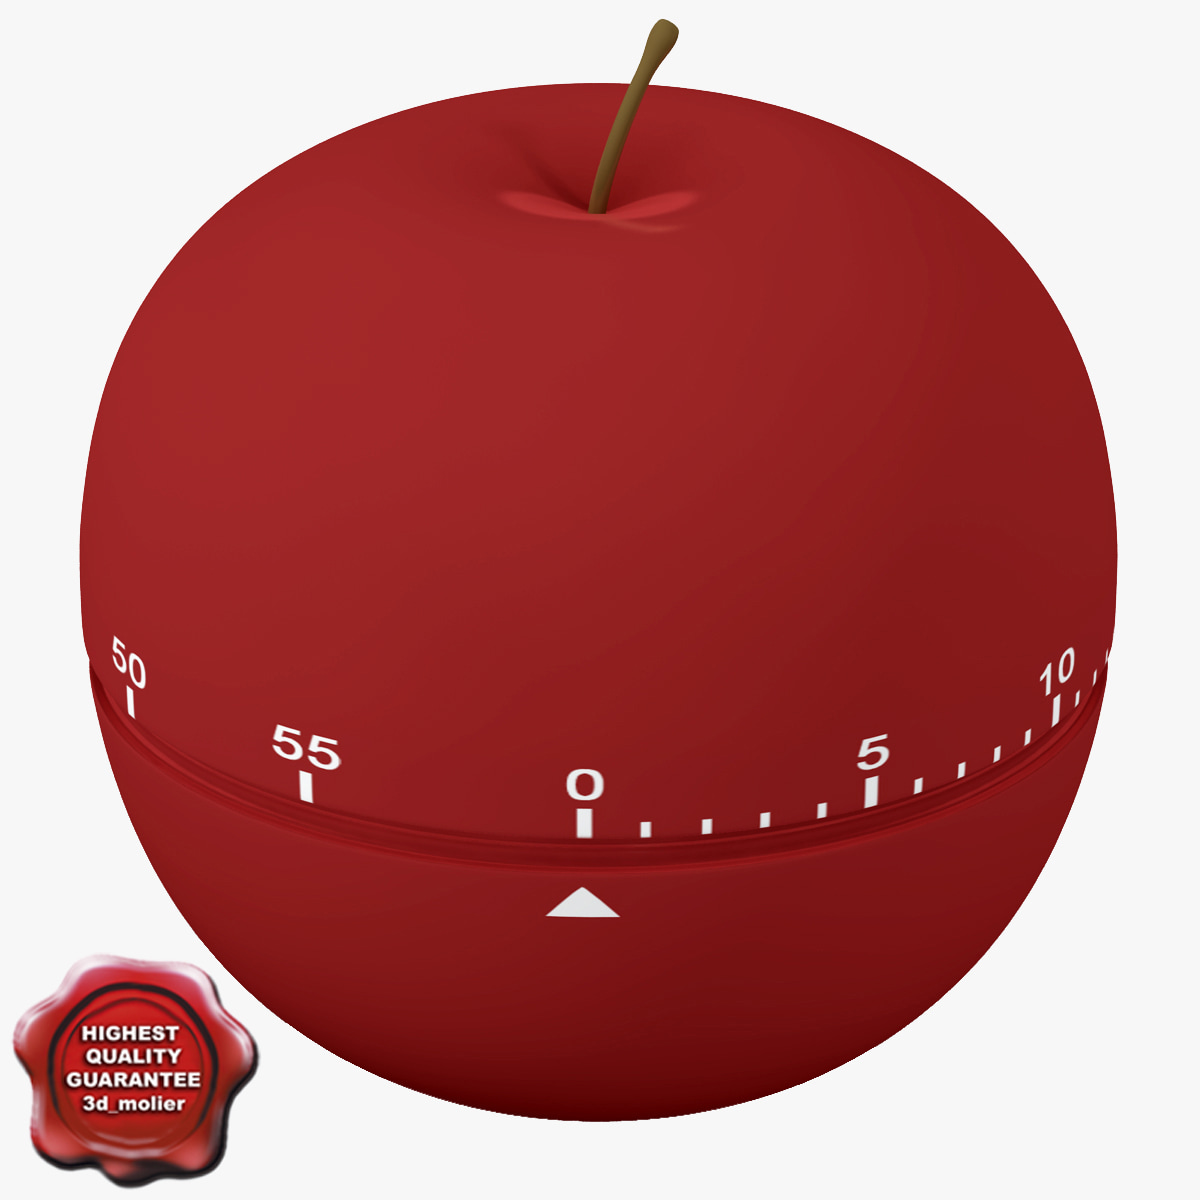 Kitchen_Timer_Apple_00.jpg